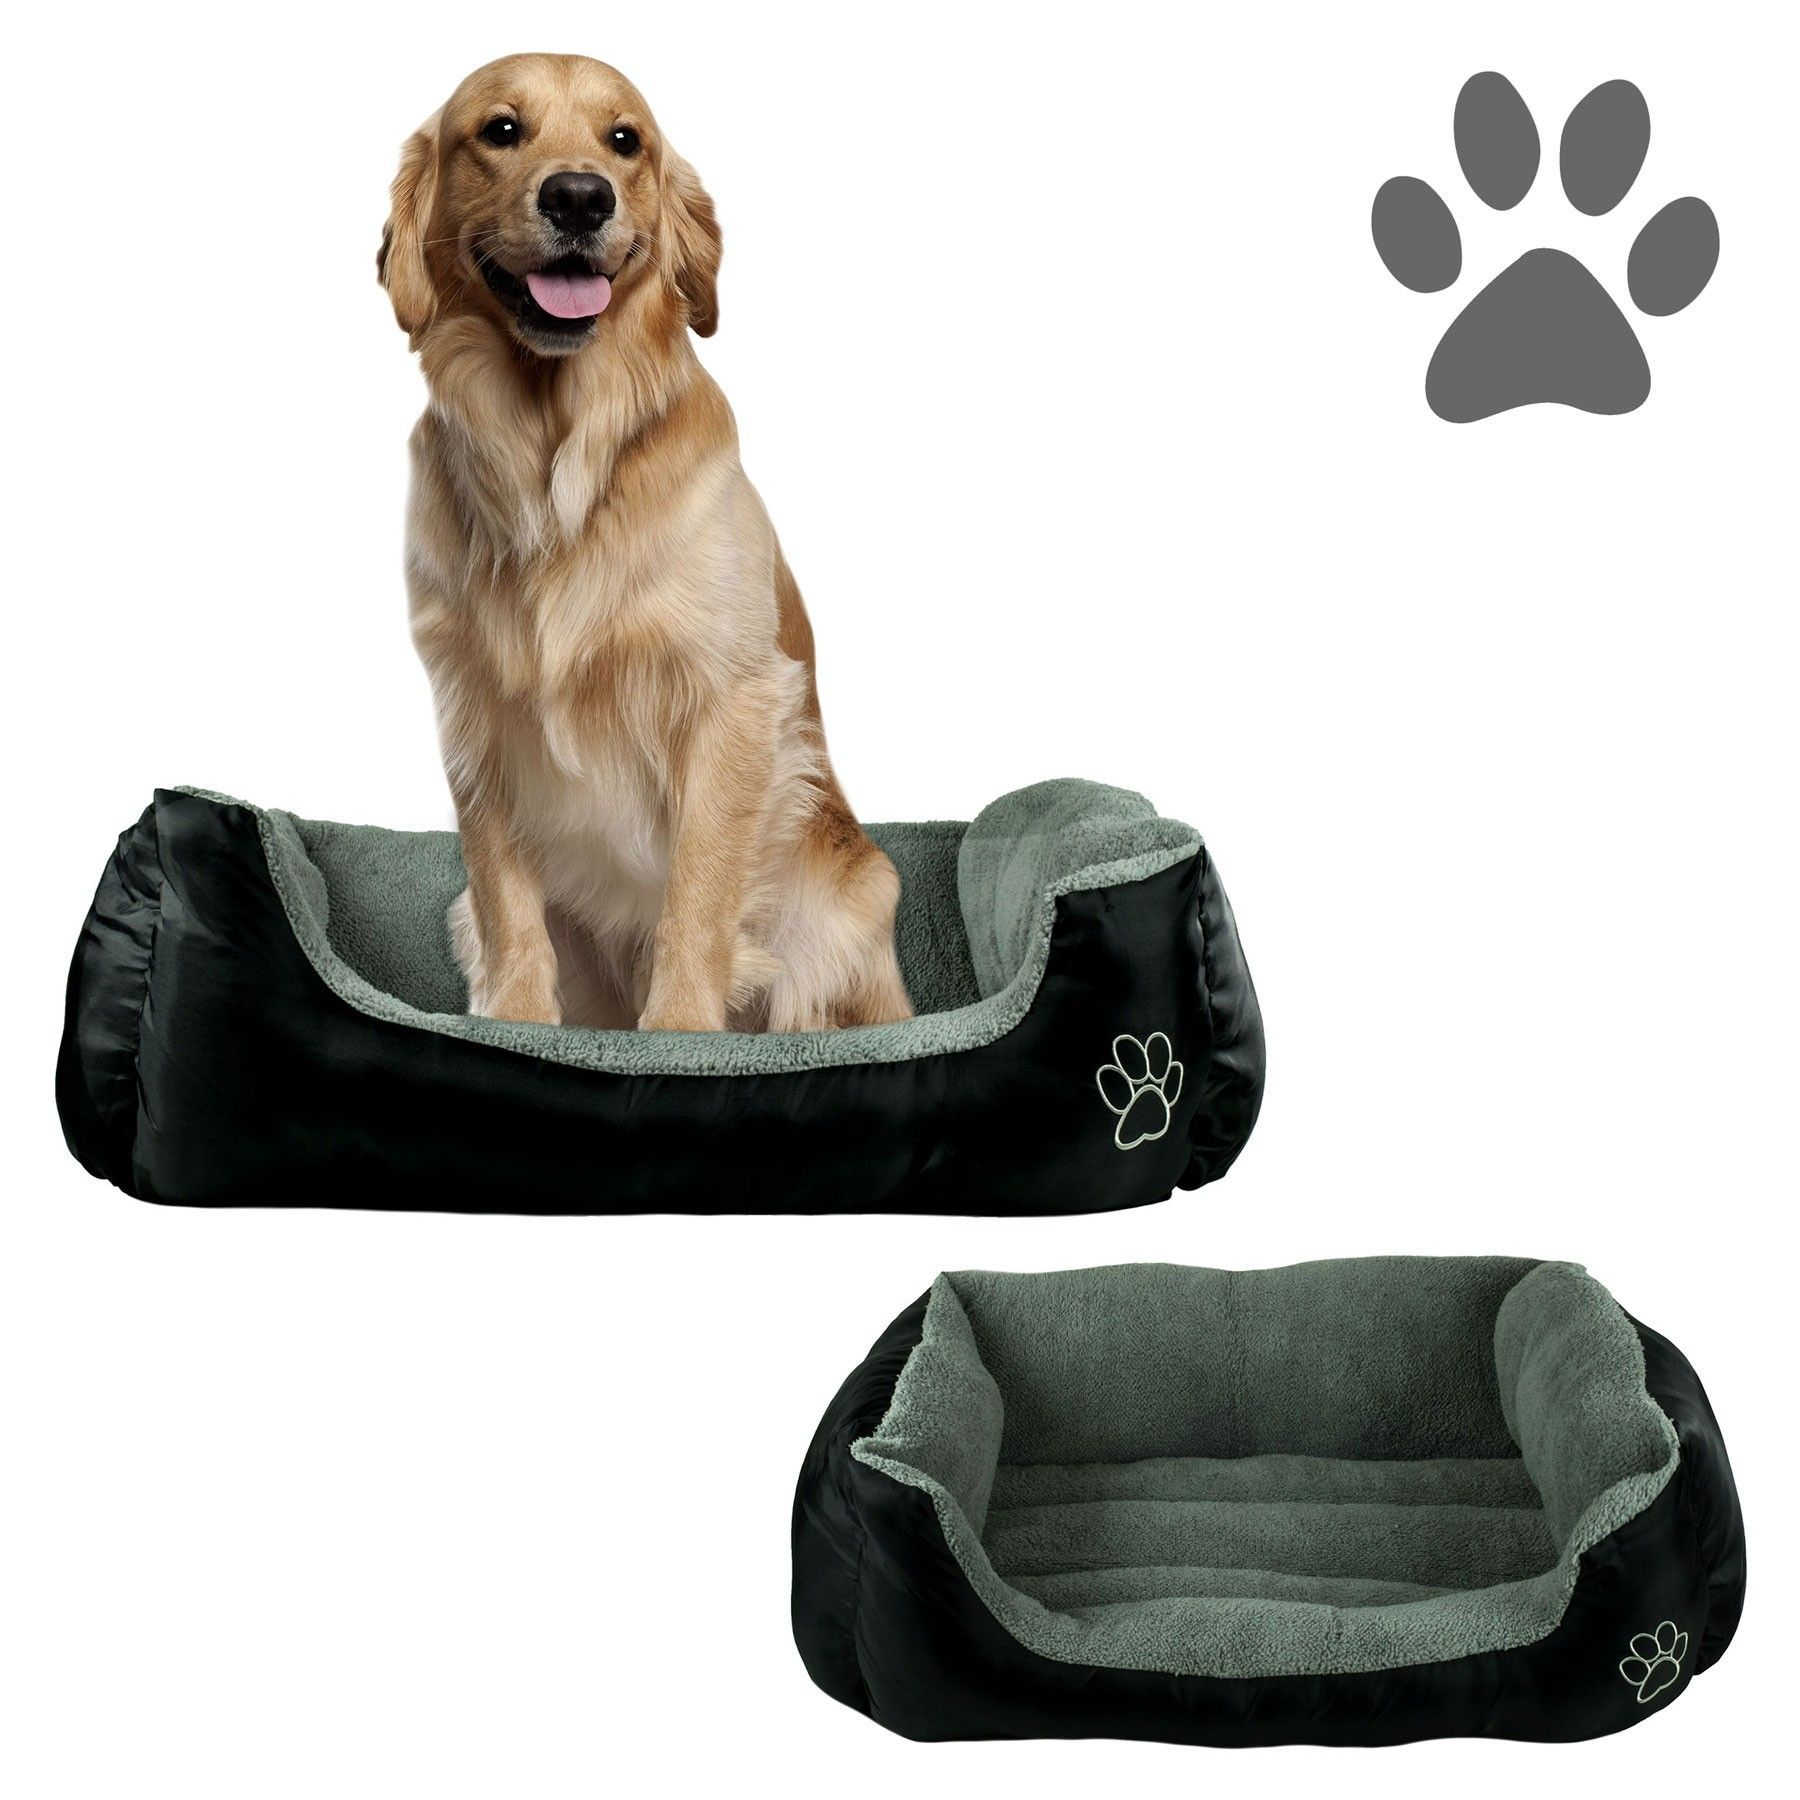 Pamper Your Pup With This Plush Cuddler Pet Bed From Beatrice In Black The Outer Dimensions Of This Bed Are 24 X 34 Inc Dog Pet Beds Dog Bed Furniture Pet Bed